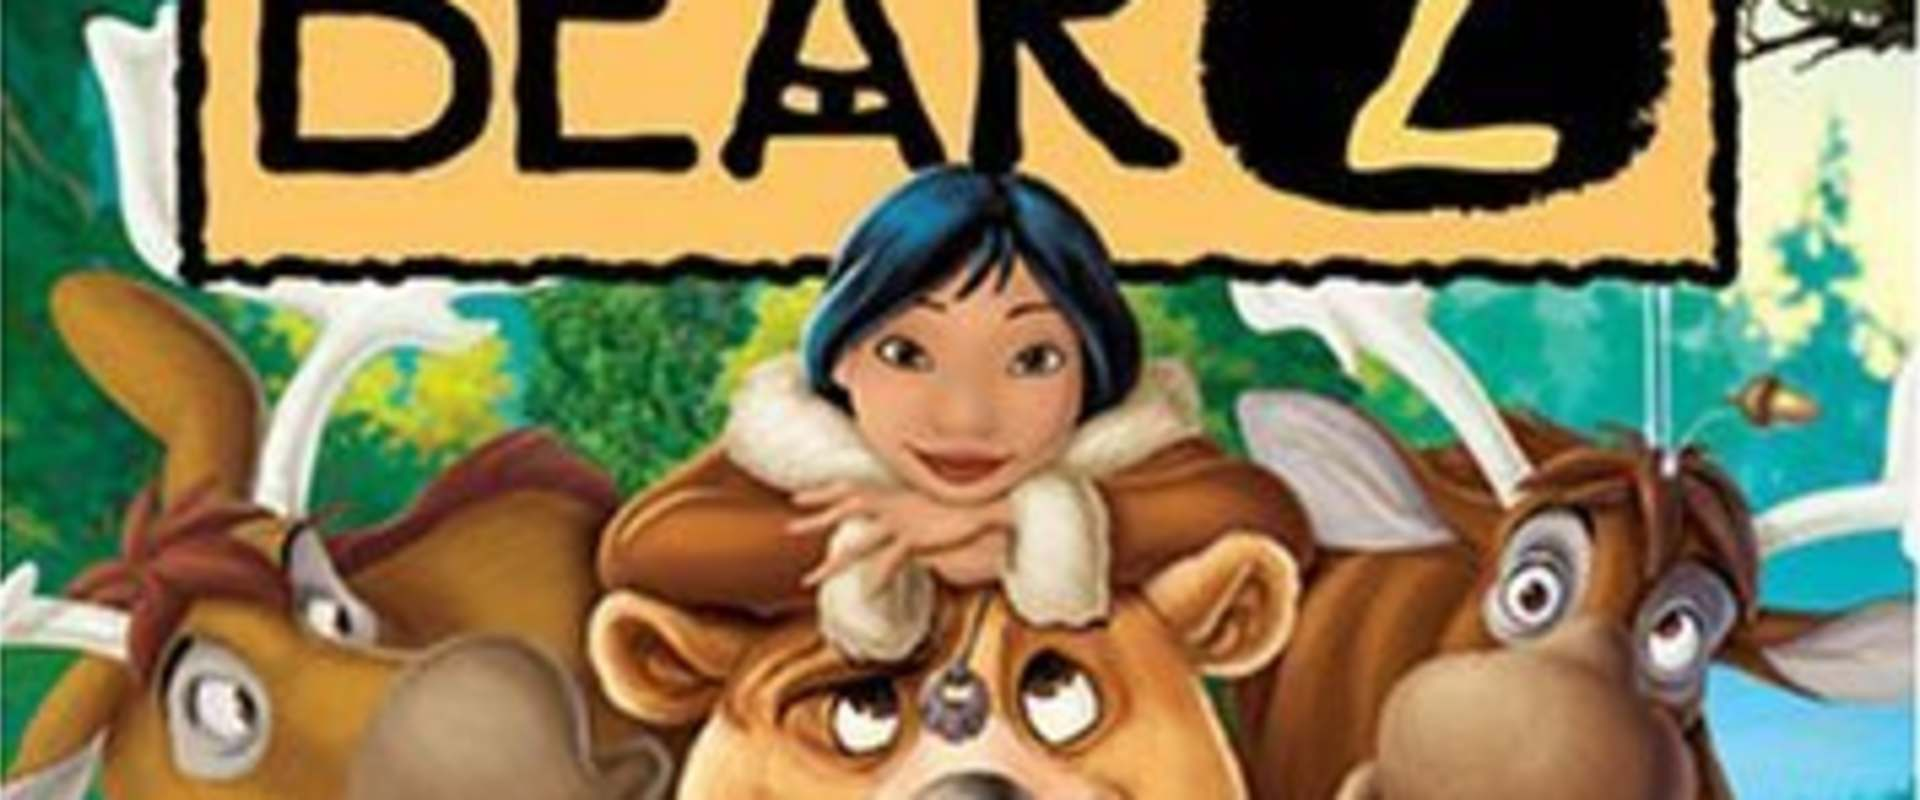 Brother Bear 2 background 2